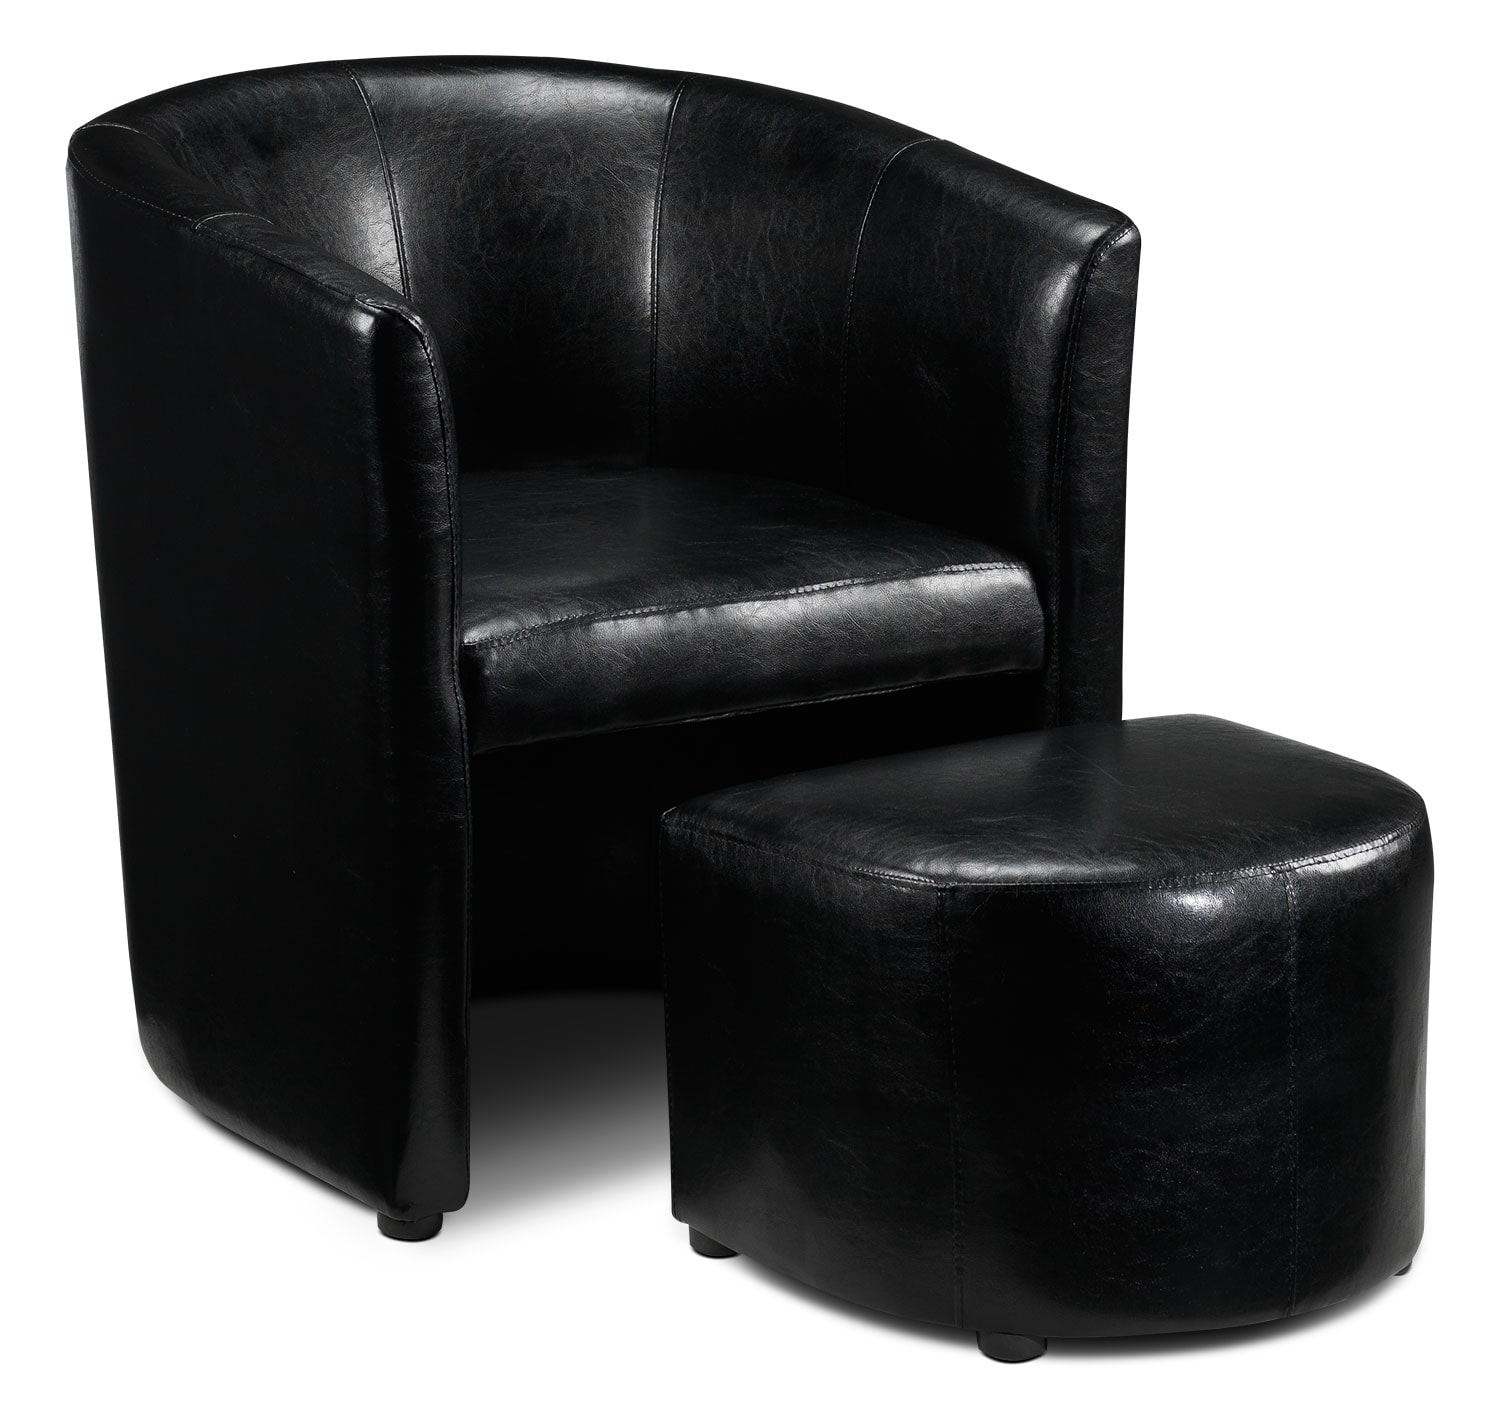 Elton Tub Chair and Ottoman - Black